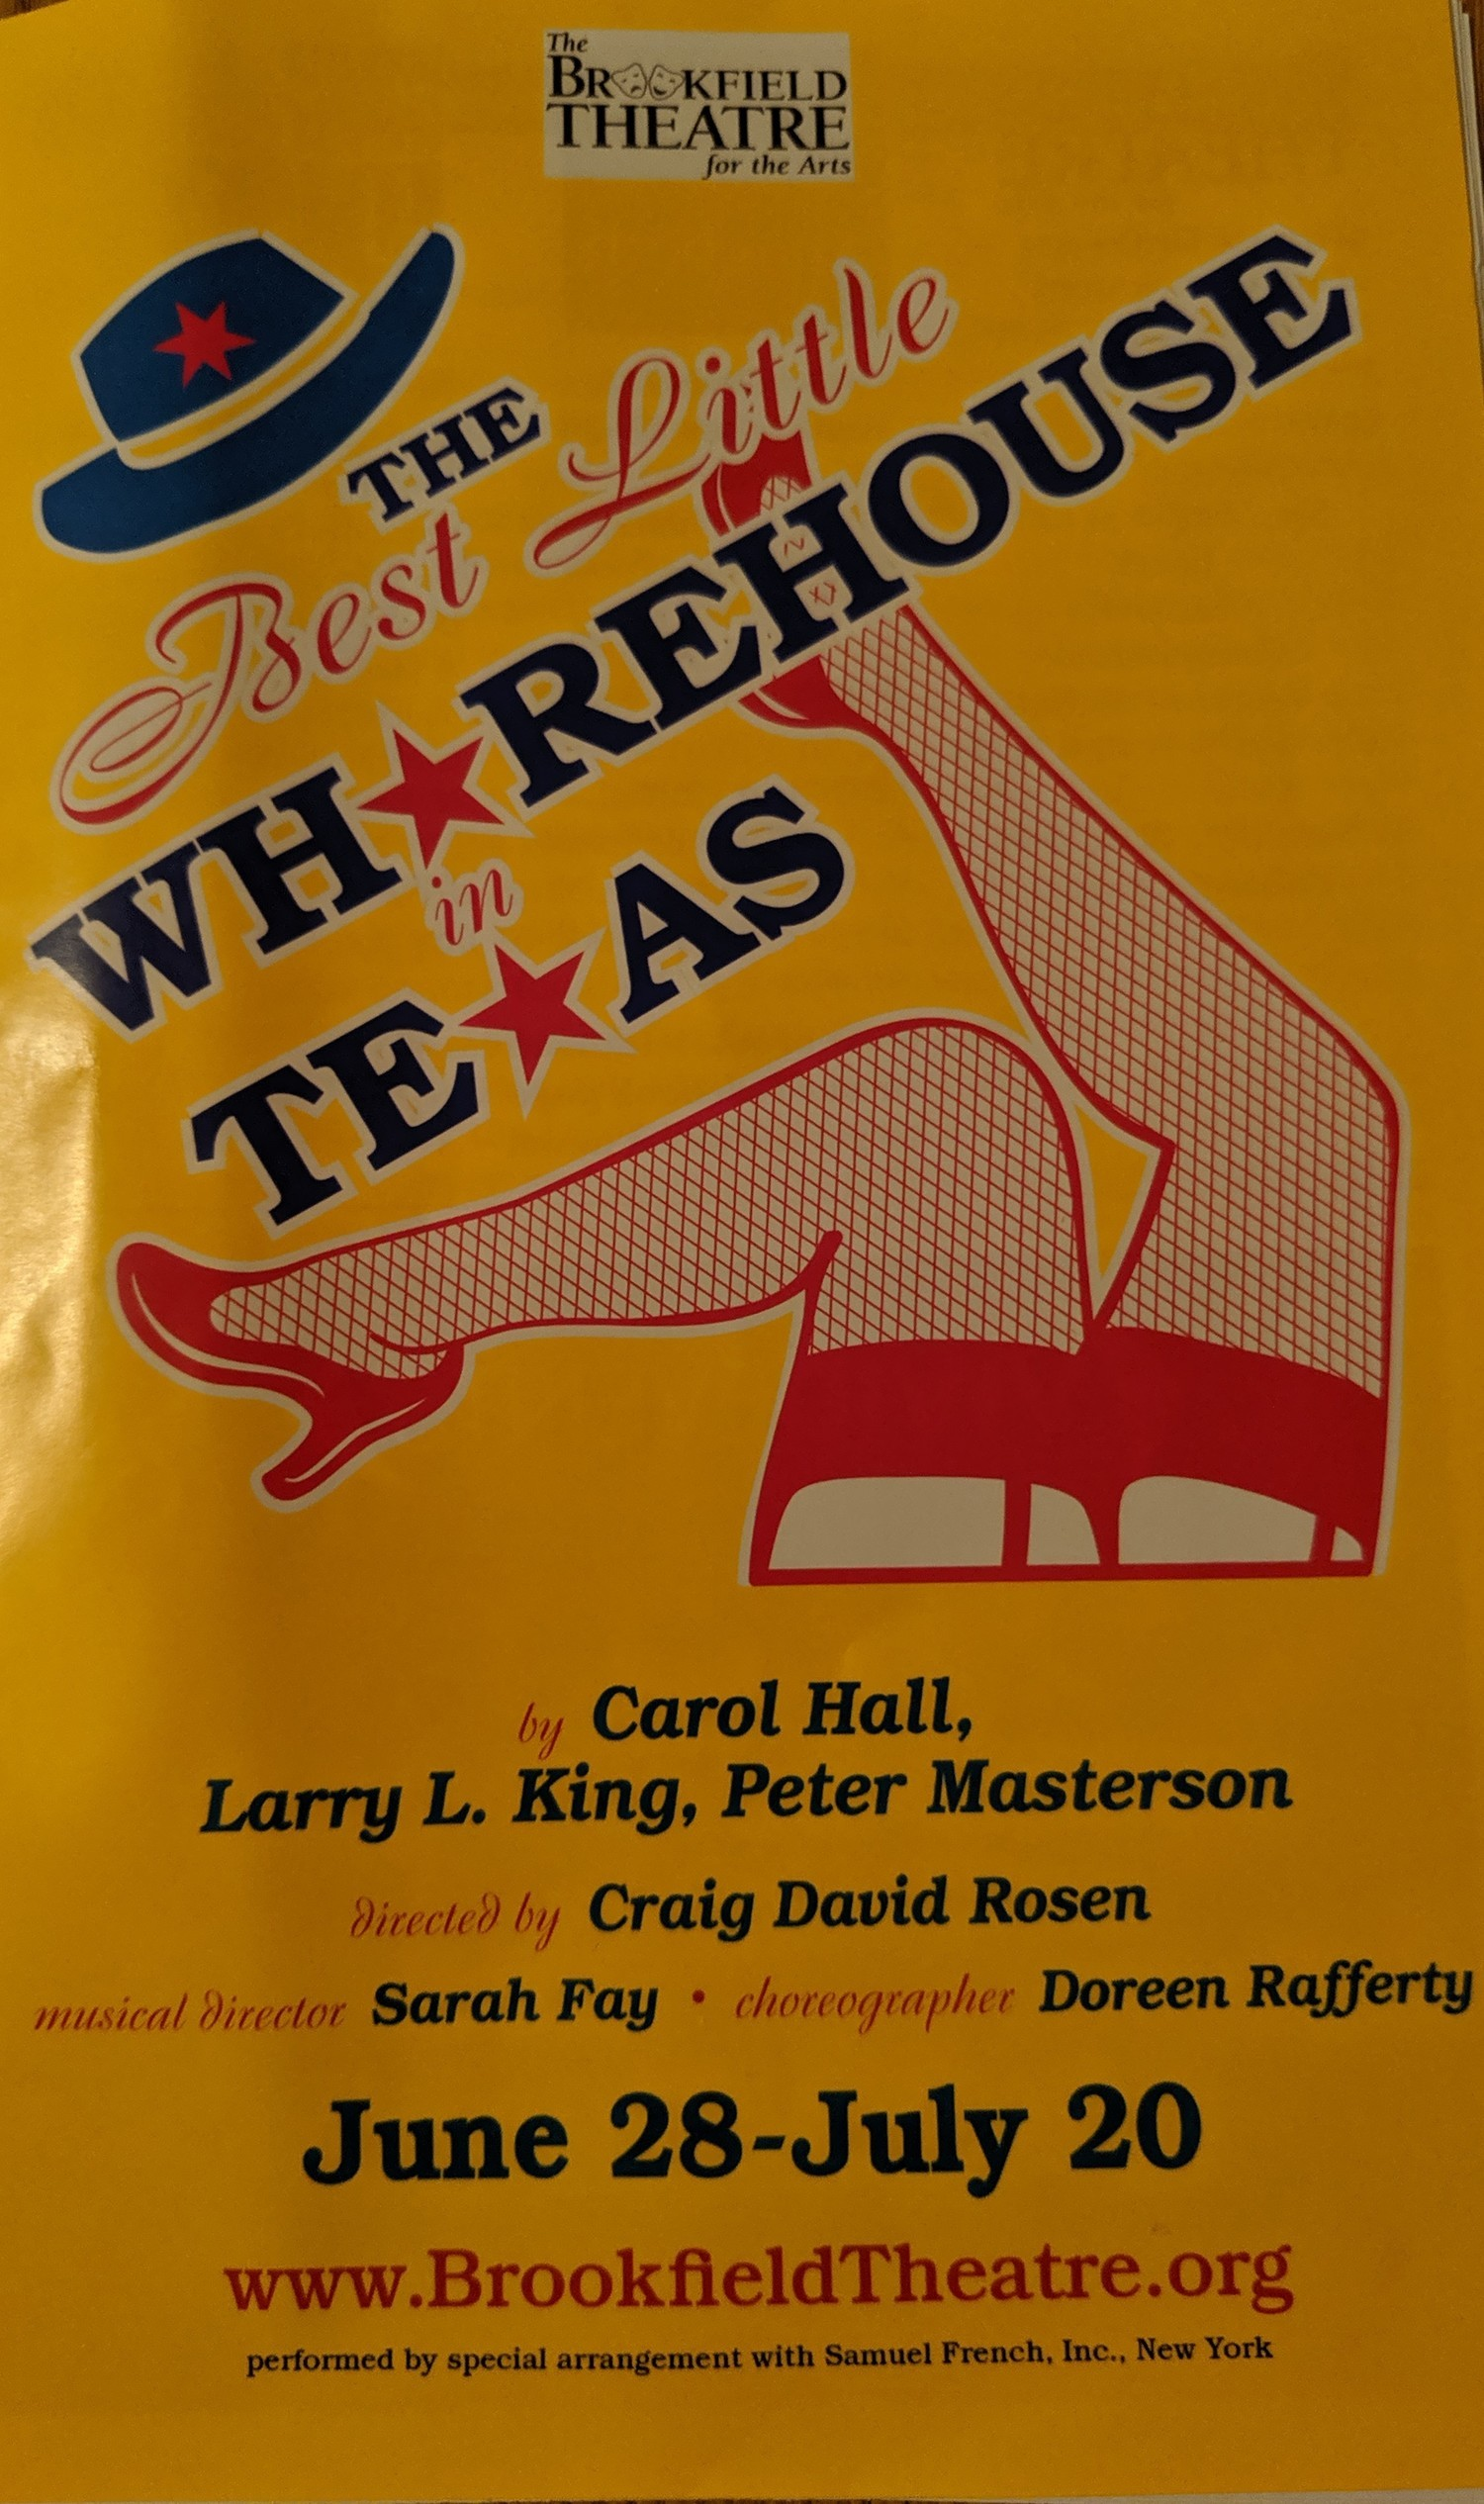 BWW Review: THE BEST LITTLE WHOREHOUSE IN TEXAS has a big night at Brookfield Theatre Of The Arts